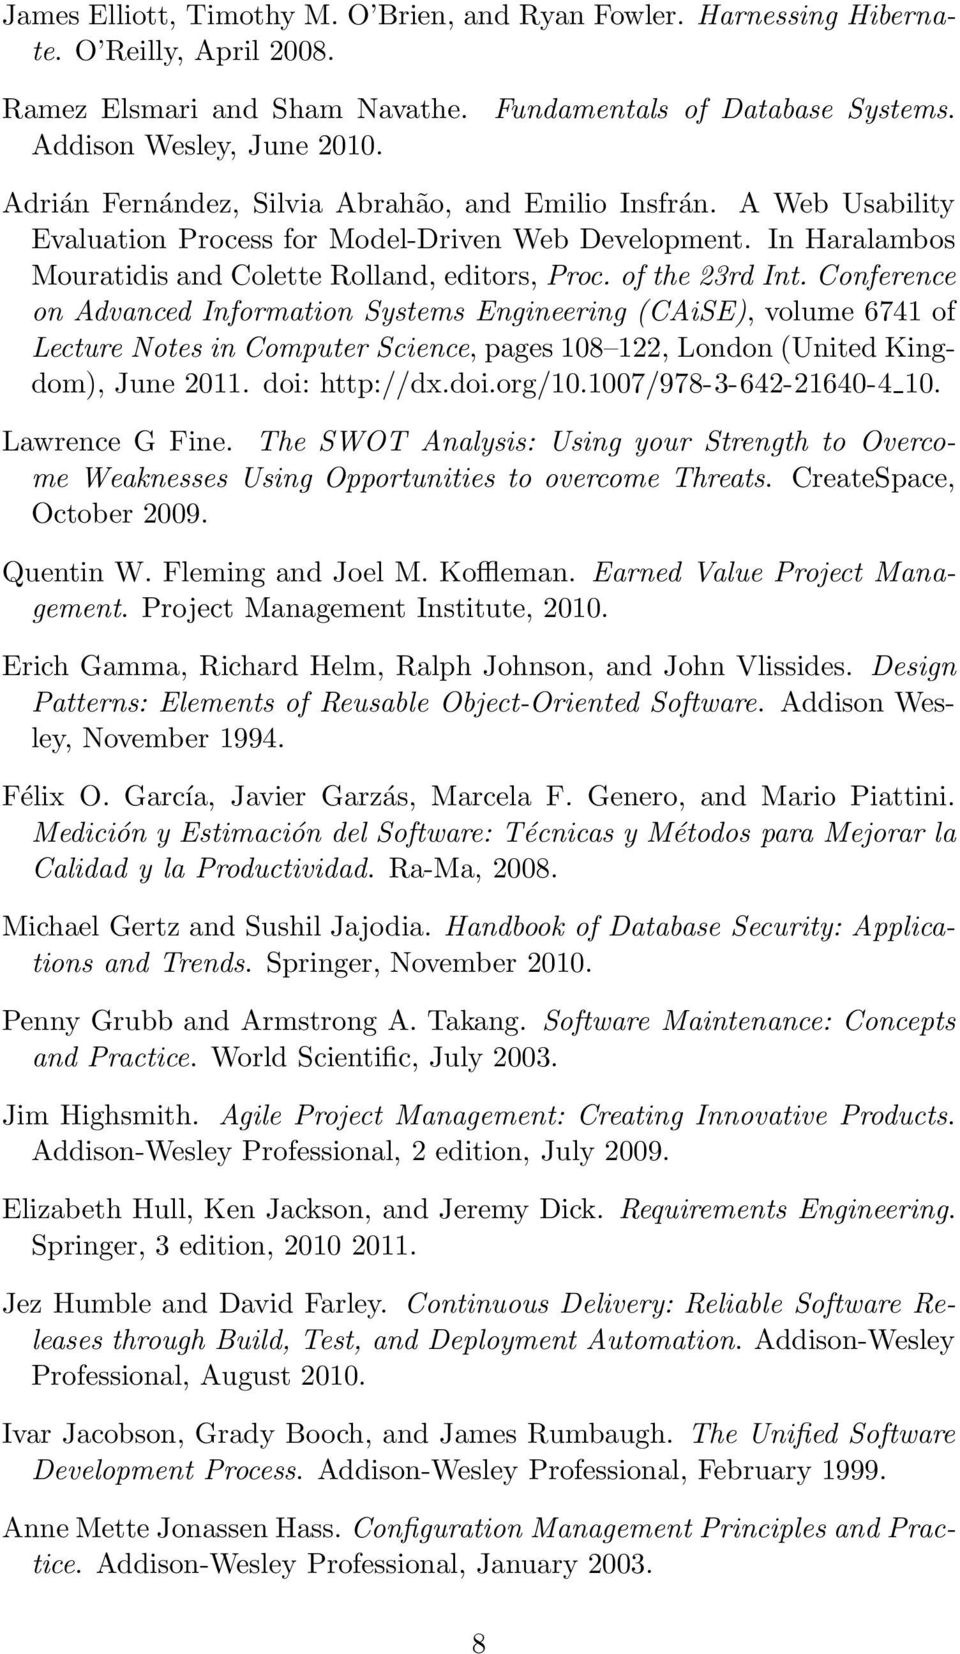 Conference on Advanced Information Systems Engineering (CAiSE), volume 6741 of Lecture Notes in Computer Science, pages 108 122, London(United Kingdom), June 2011. doi: http://dx.doi.org/10.